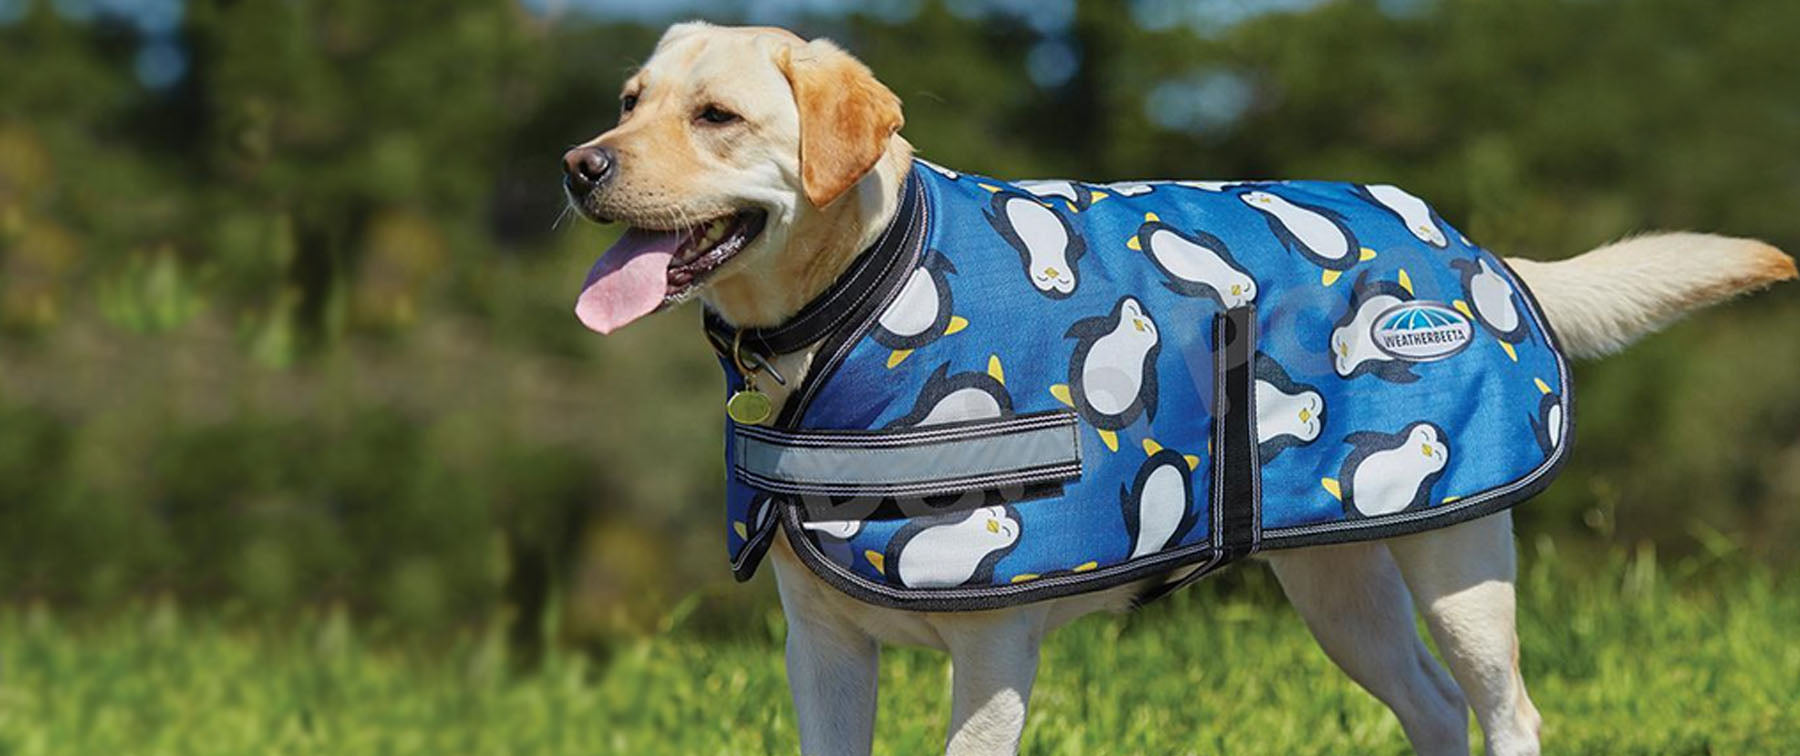 Why Should I Buy a Dog Coat?